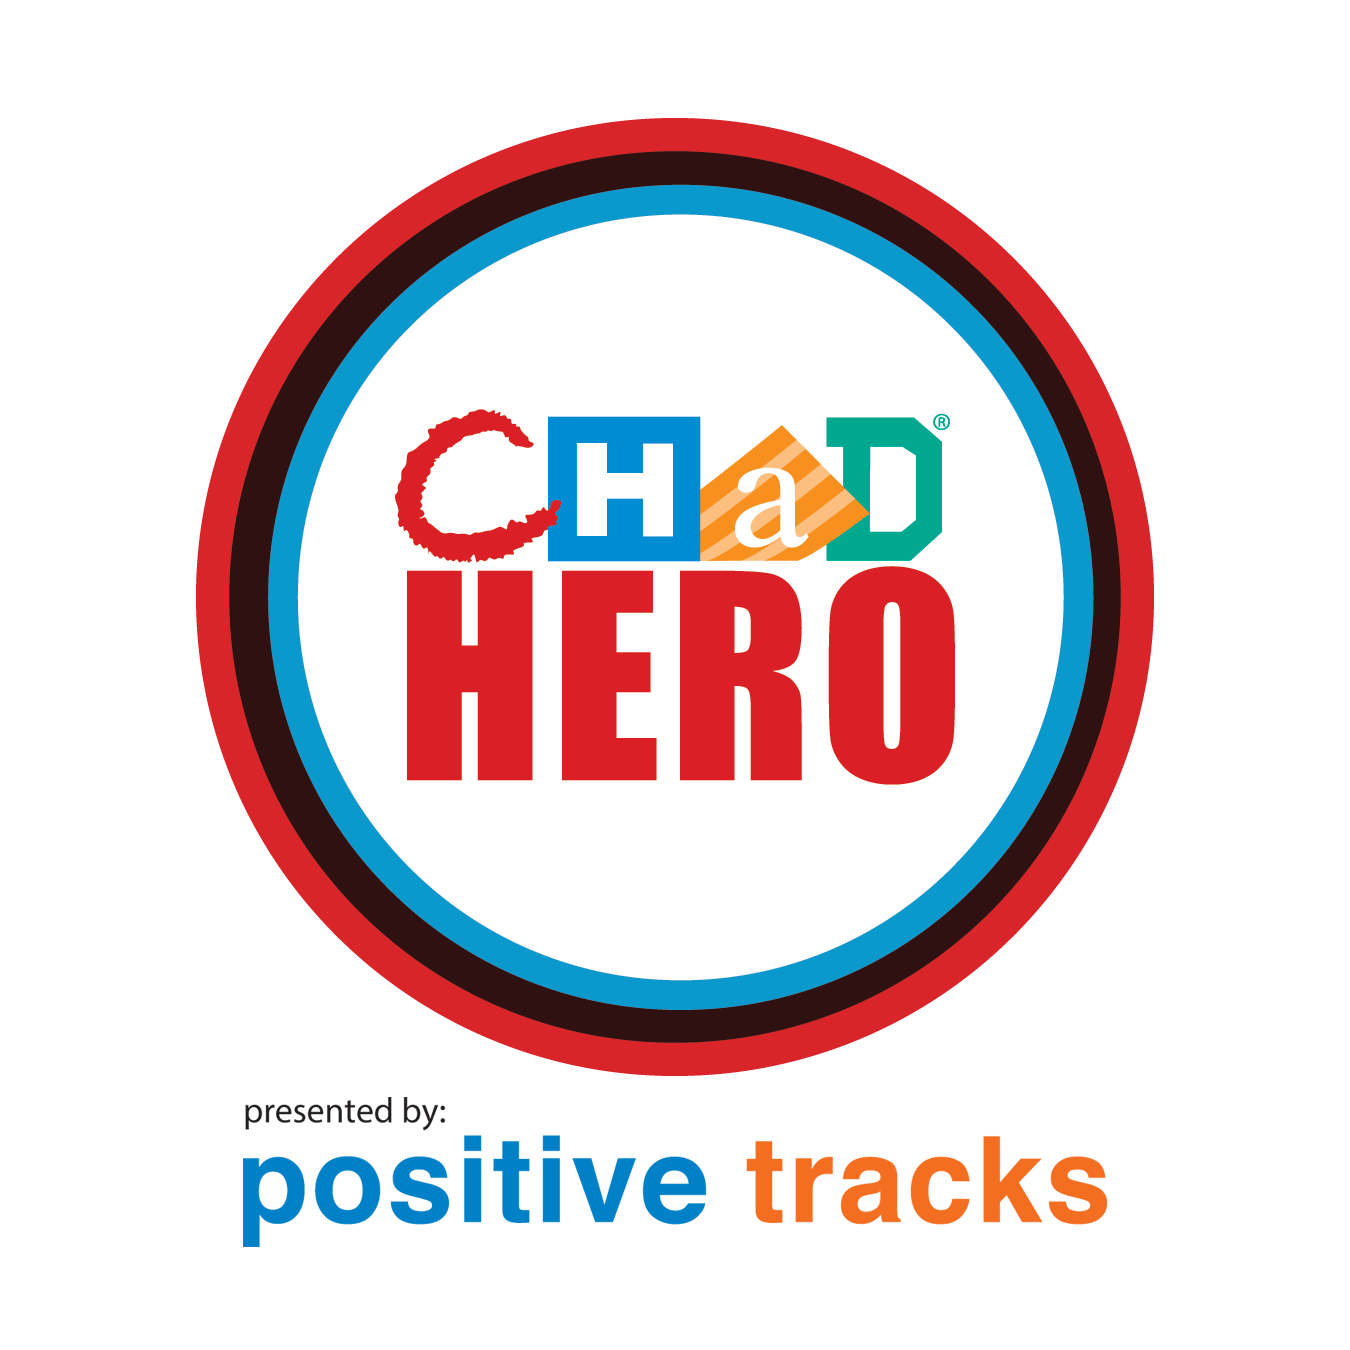 CHaD Hero, presented by Positive Tracks